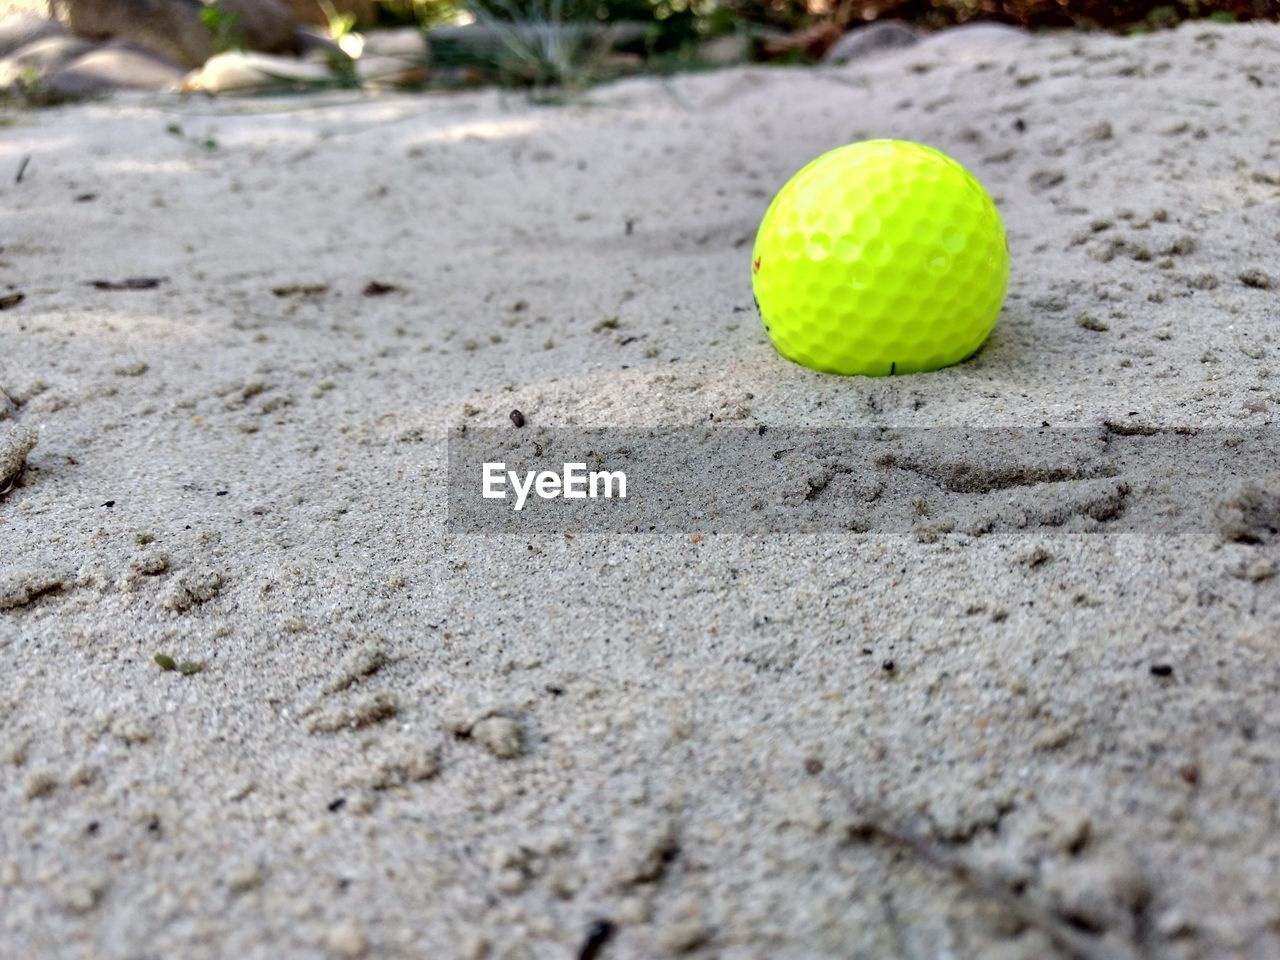 SURFACE LEVEL OF YELLOW BALL